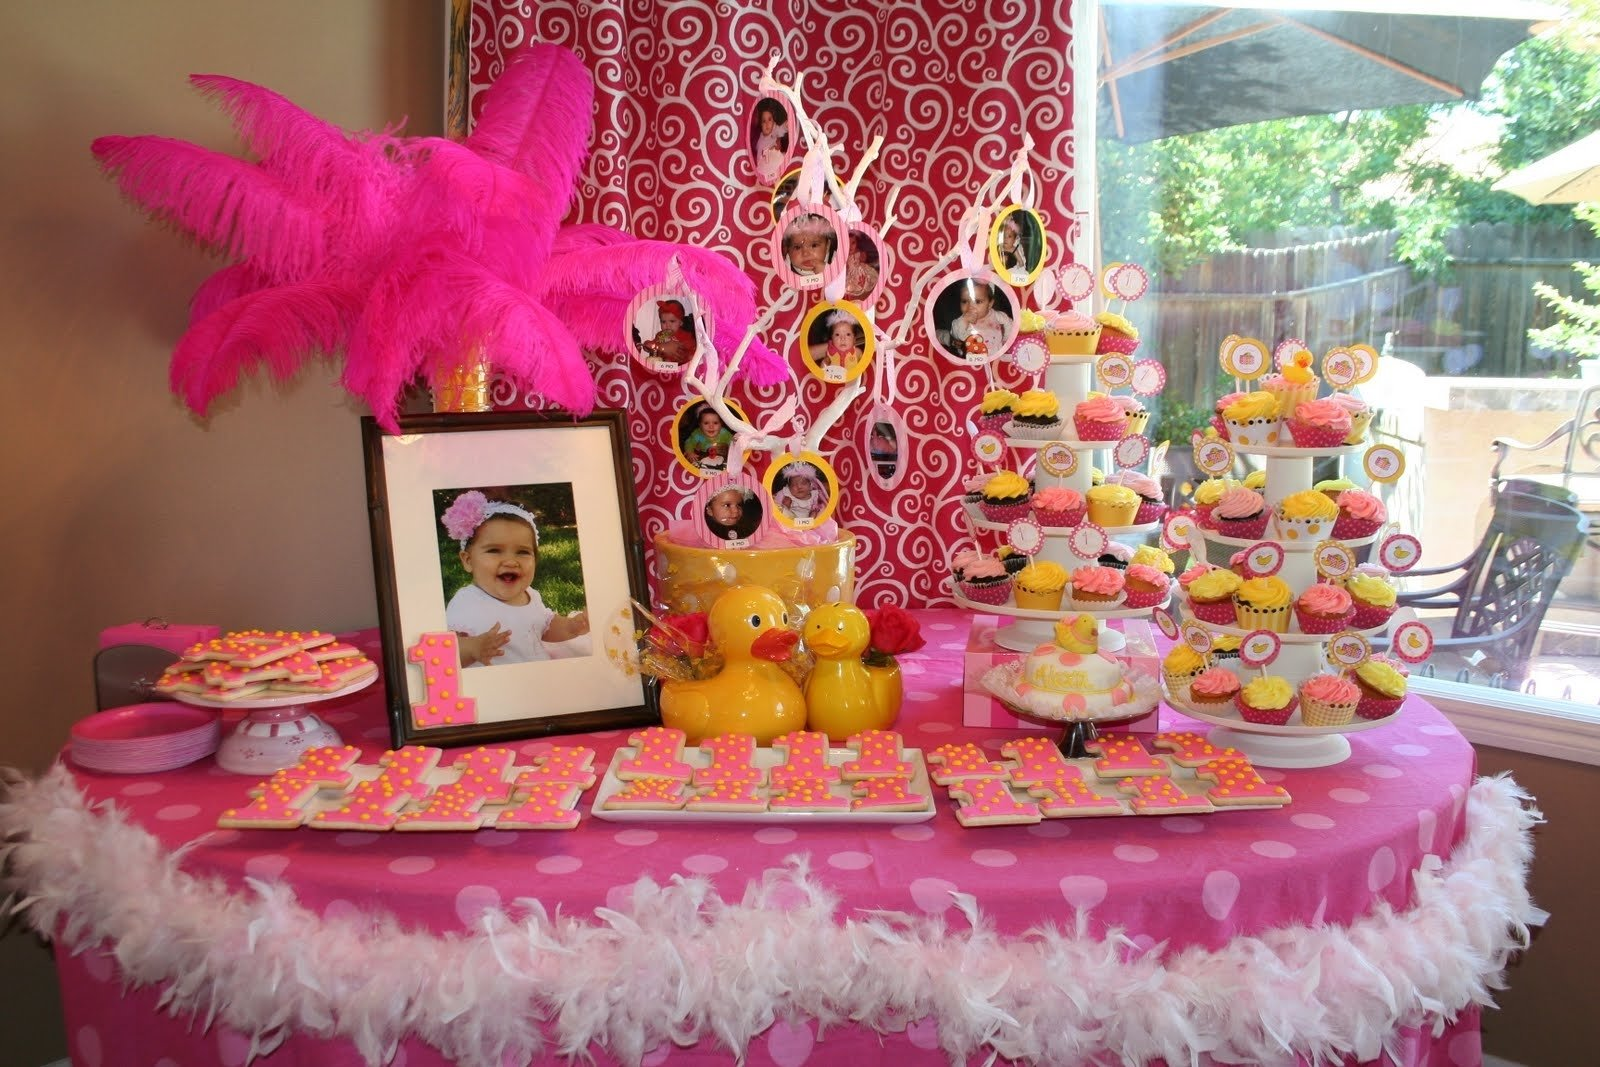 10 Stunning Ideas For Girls Birthday Party home party decorations ideas for girls decor first birthday party 2 2020